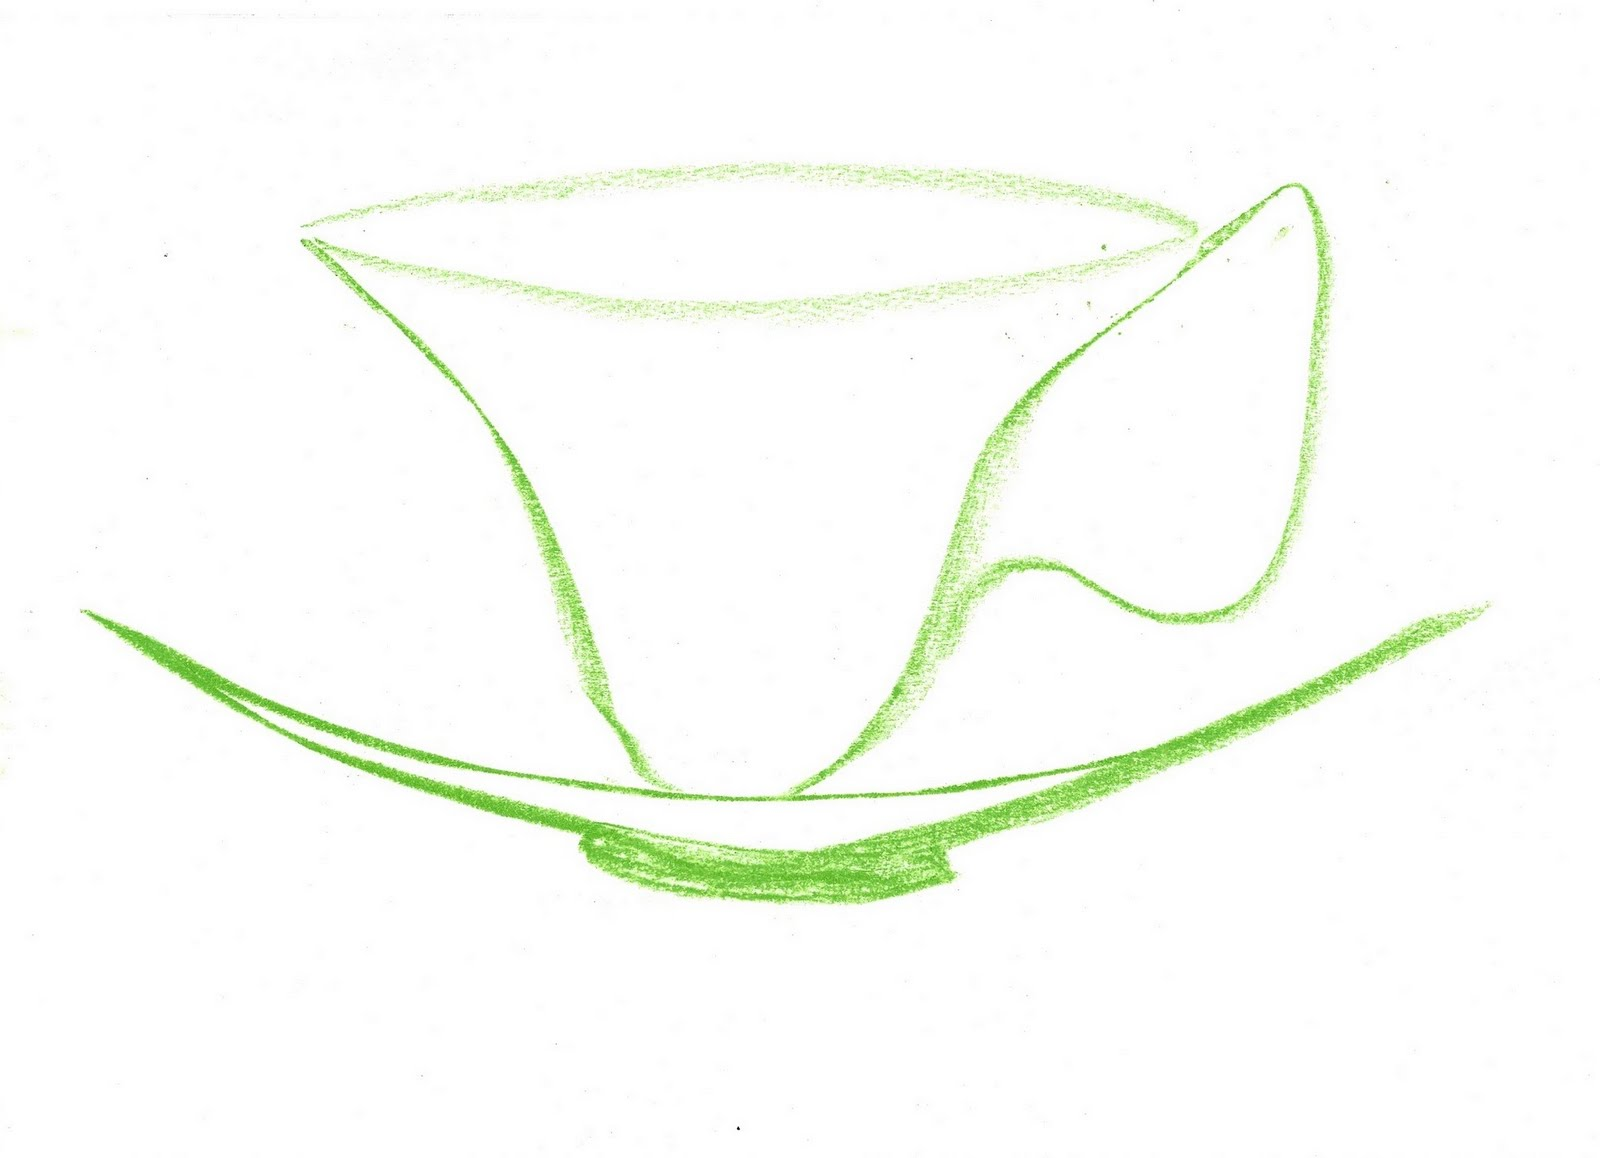 Teacup and saucer - the Esther Montgomery sit and think sign